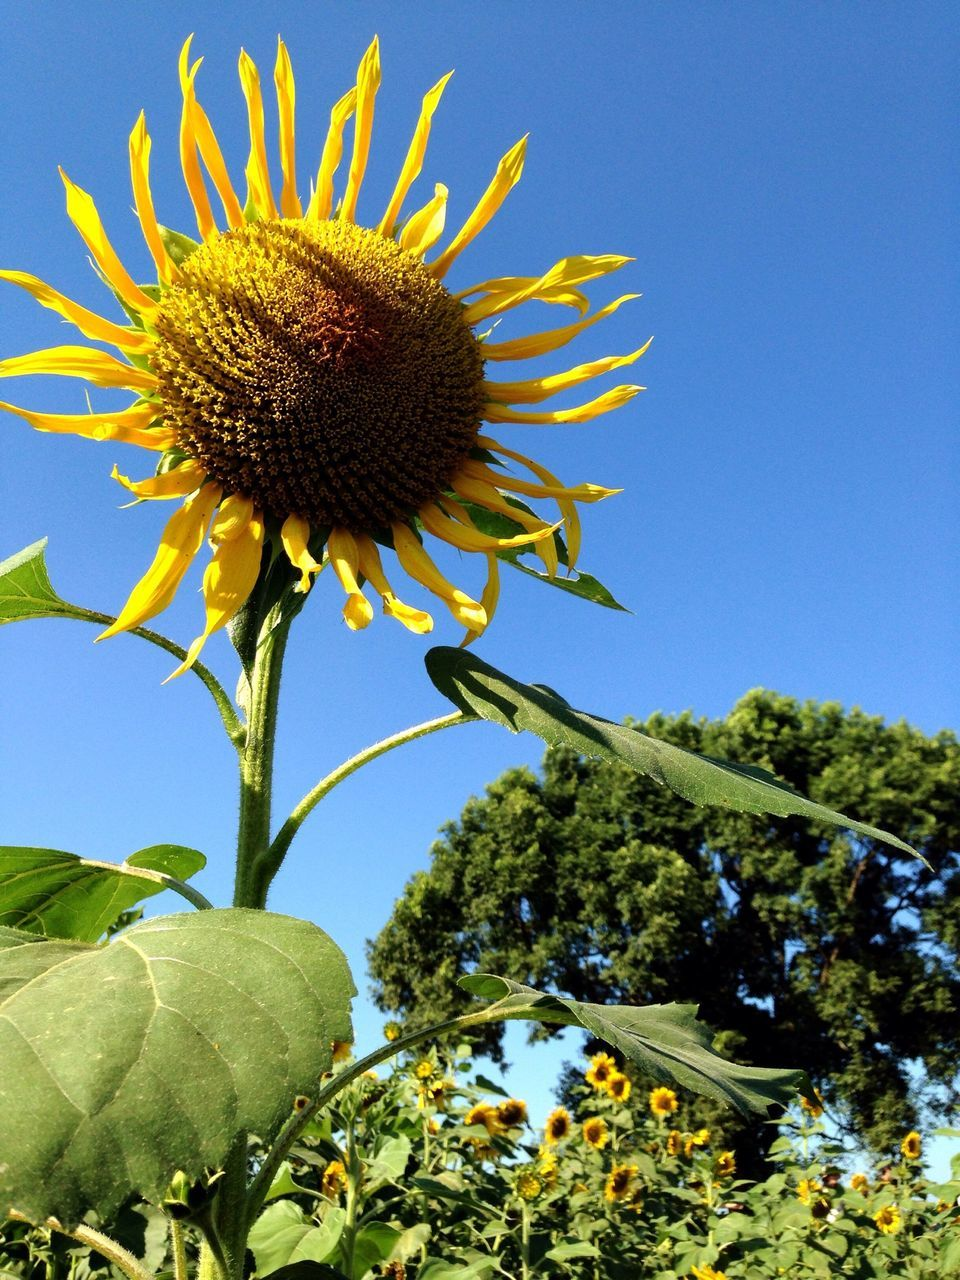 flower, growth, nature, fragility, plant, beauty in nature, sunflower, clear sky, freshness, low angle view, day, no people, tree, petal, outdoors, flower head, blooming, leaf, close-up, sky